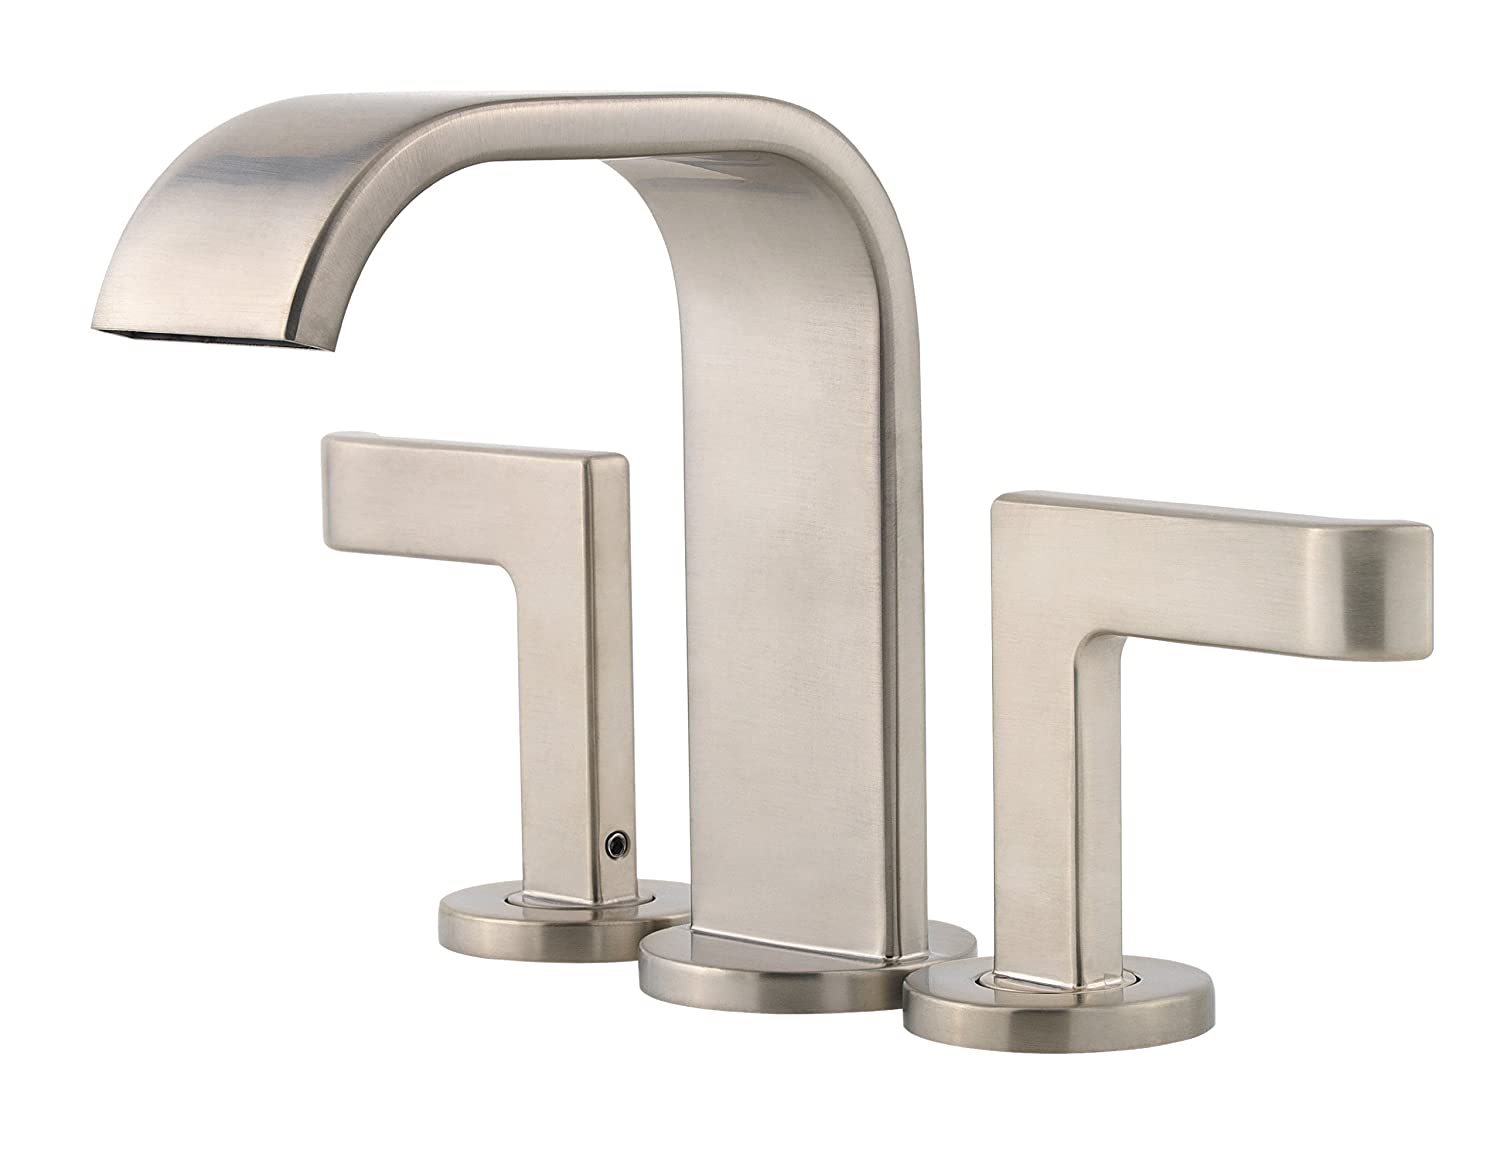 Pfister Skye 2-Handle Mini-Widespread Bathroom Faucet, Brushed ...